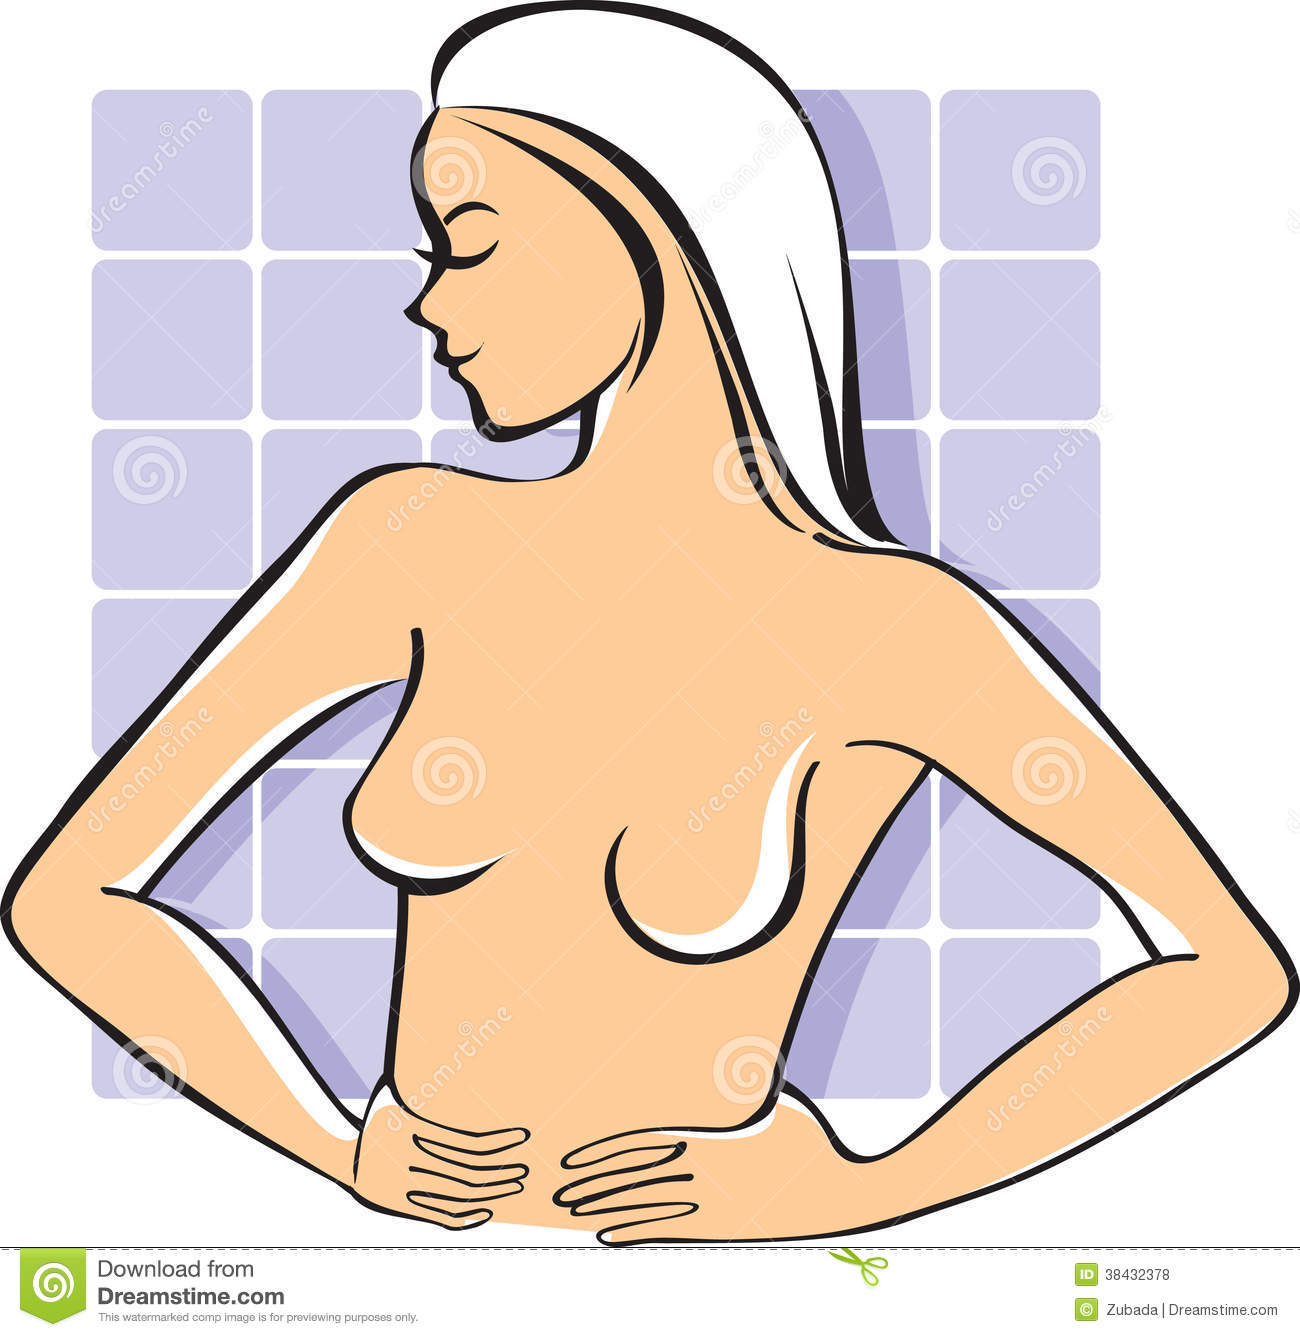 Breast Self Examination Video Downloads Free - YouTube